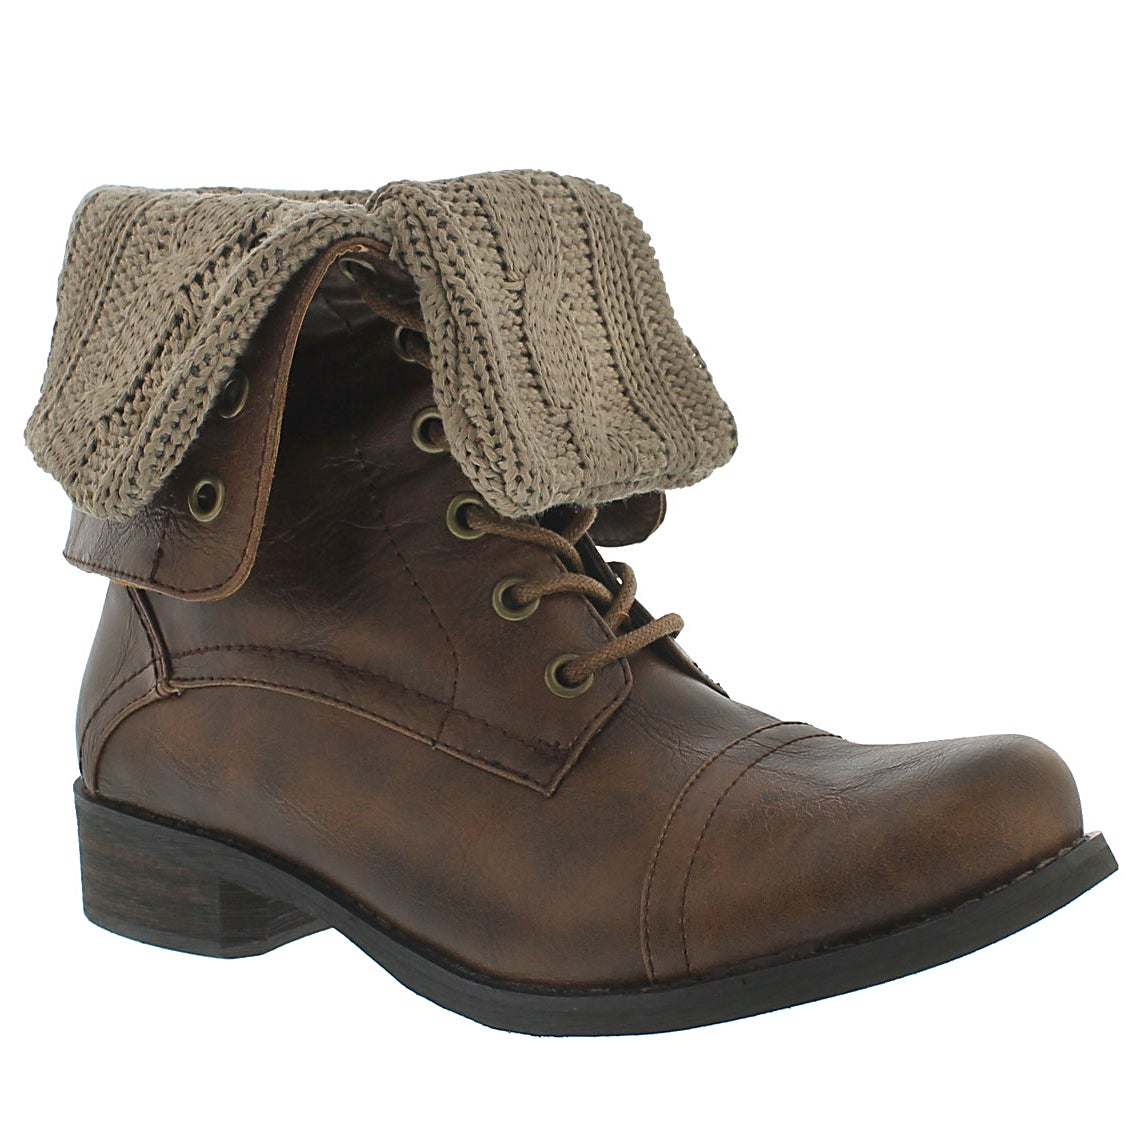 Women's BEV brown lace up fold down combat boots